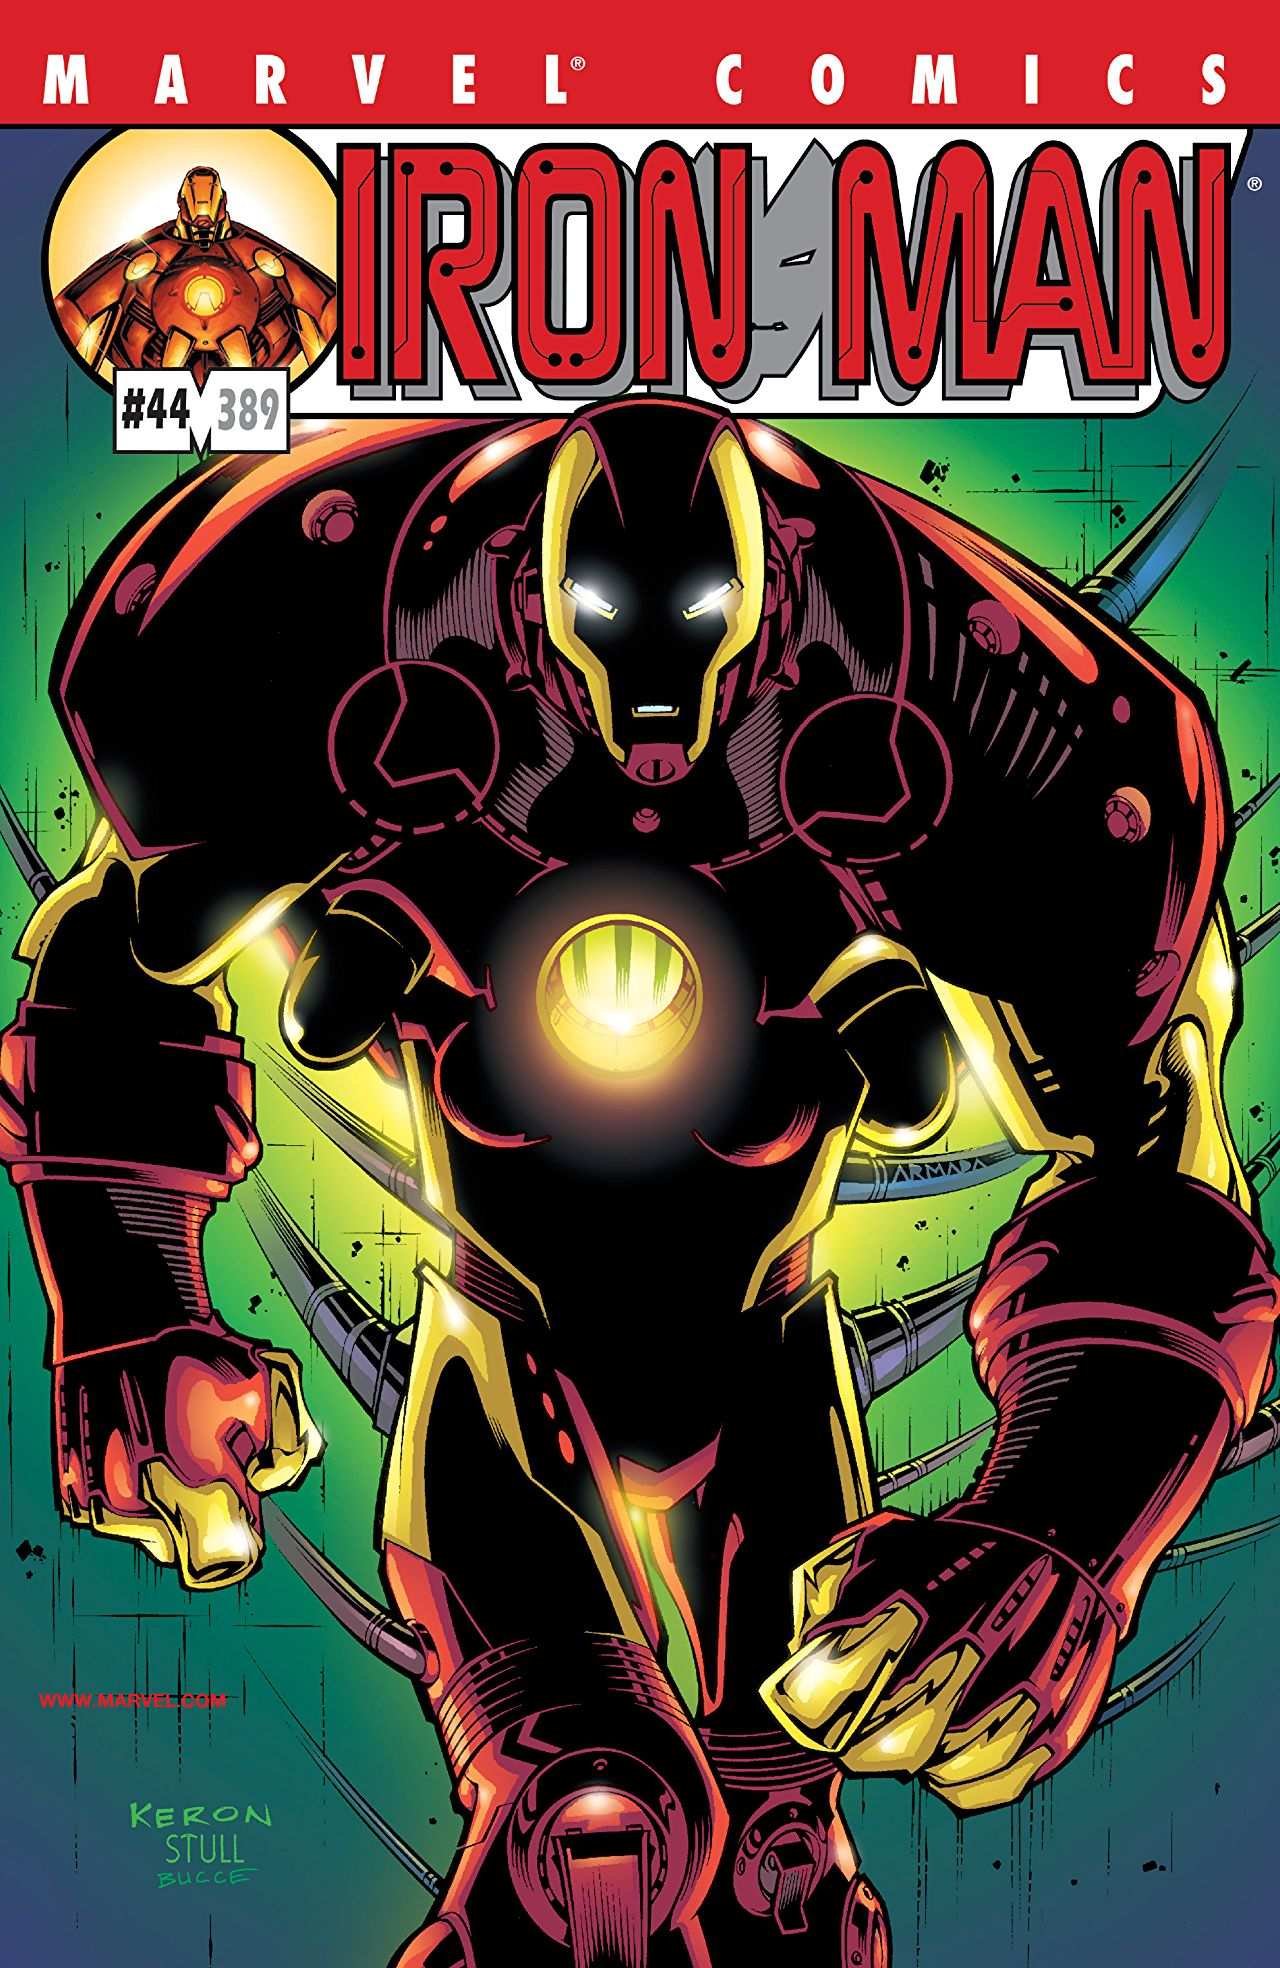 Iron Man Vol 3 44